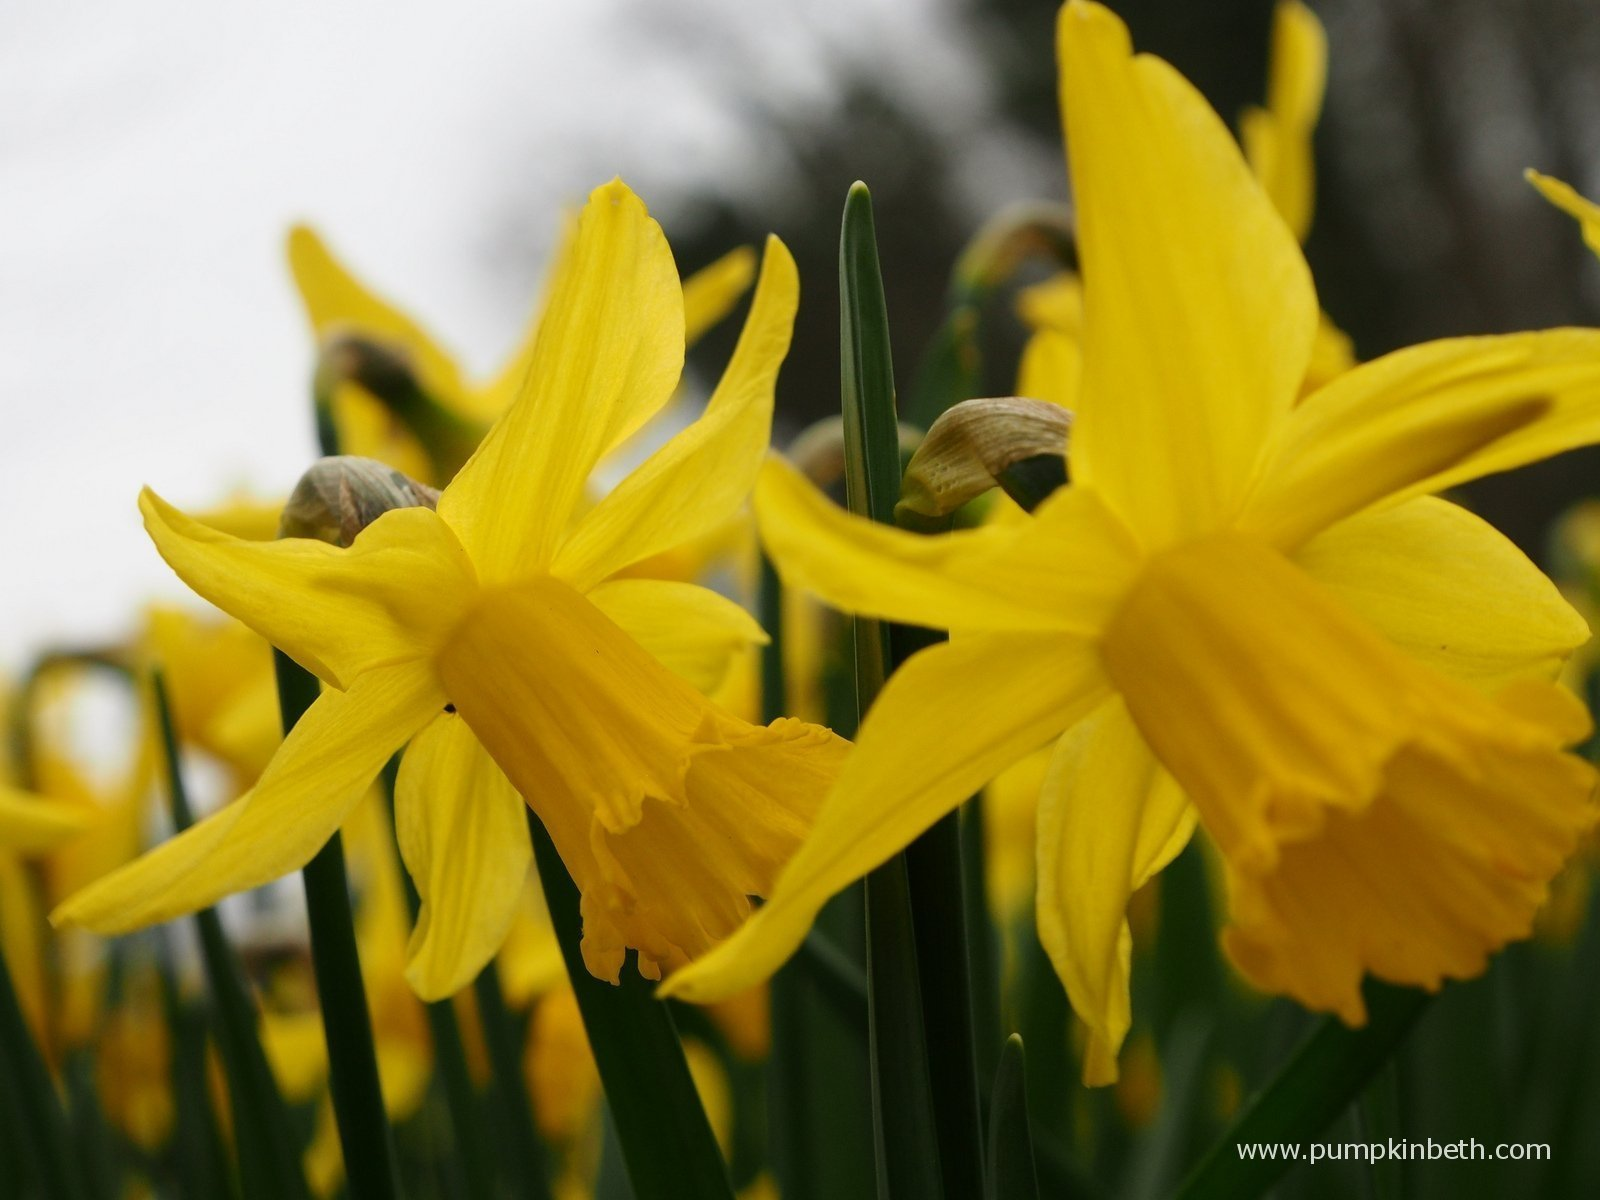 More Information About Daffodils Pumpkin Beth